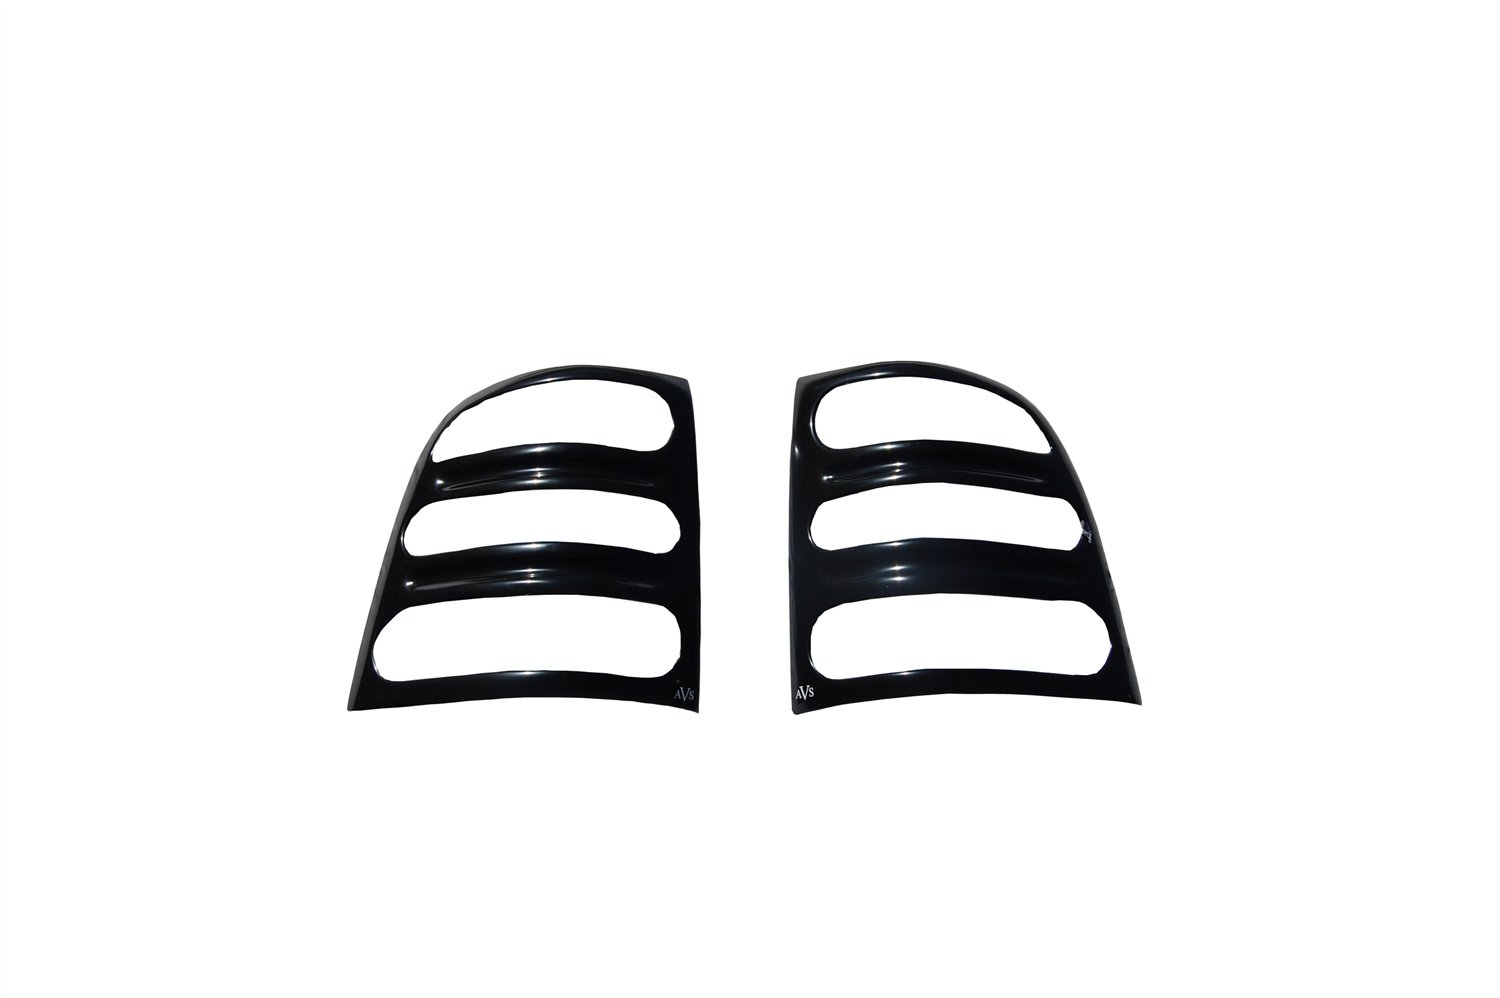 Auto Ventshade 36225 Slots Taillight Covers for 2004-2008 Ford F-150